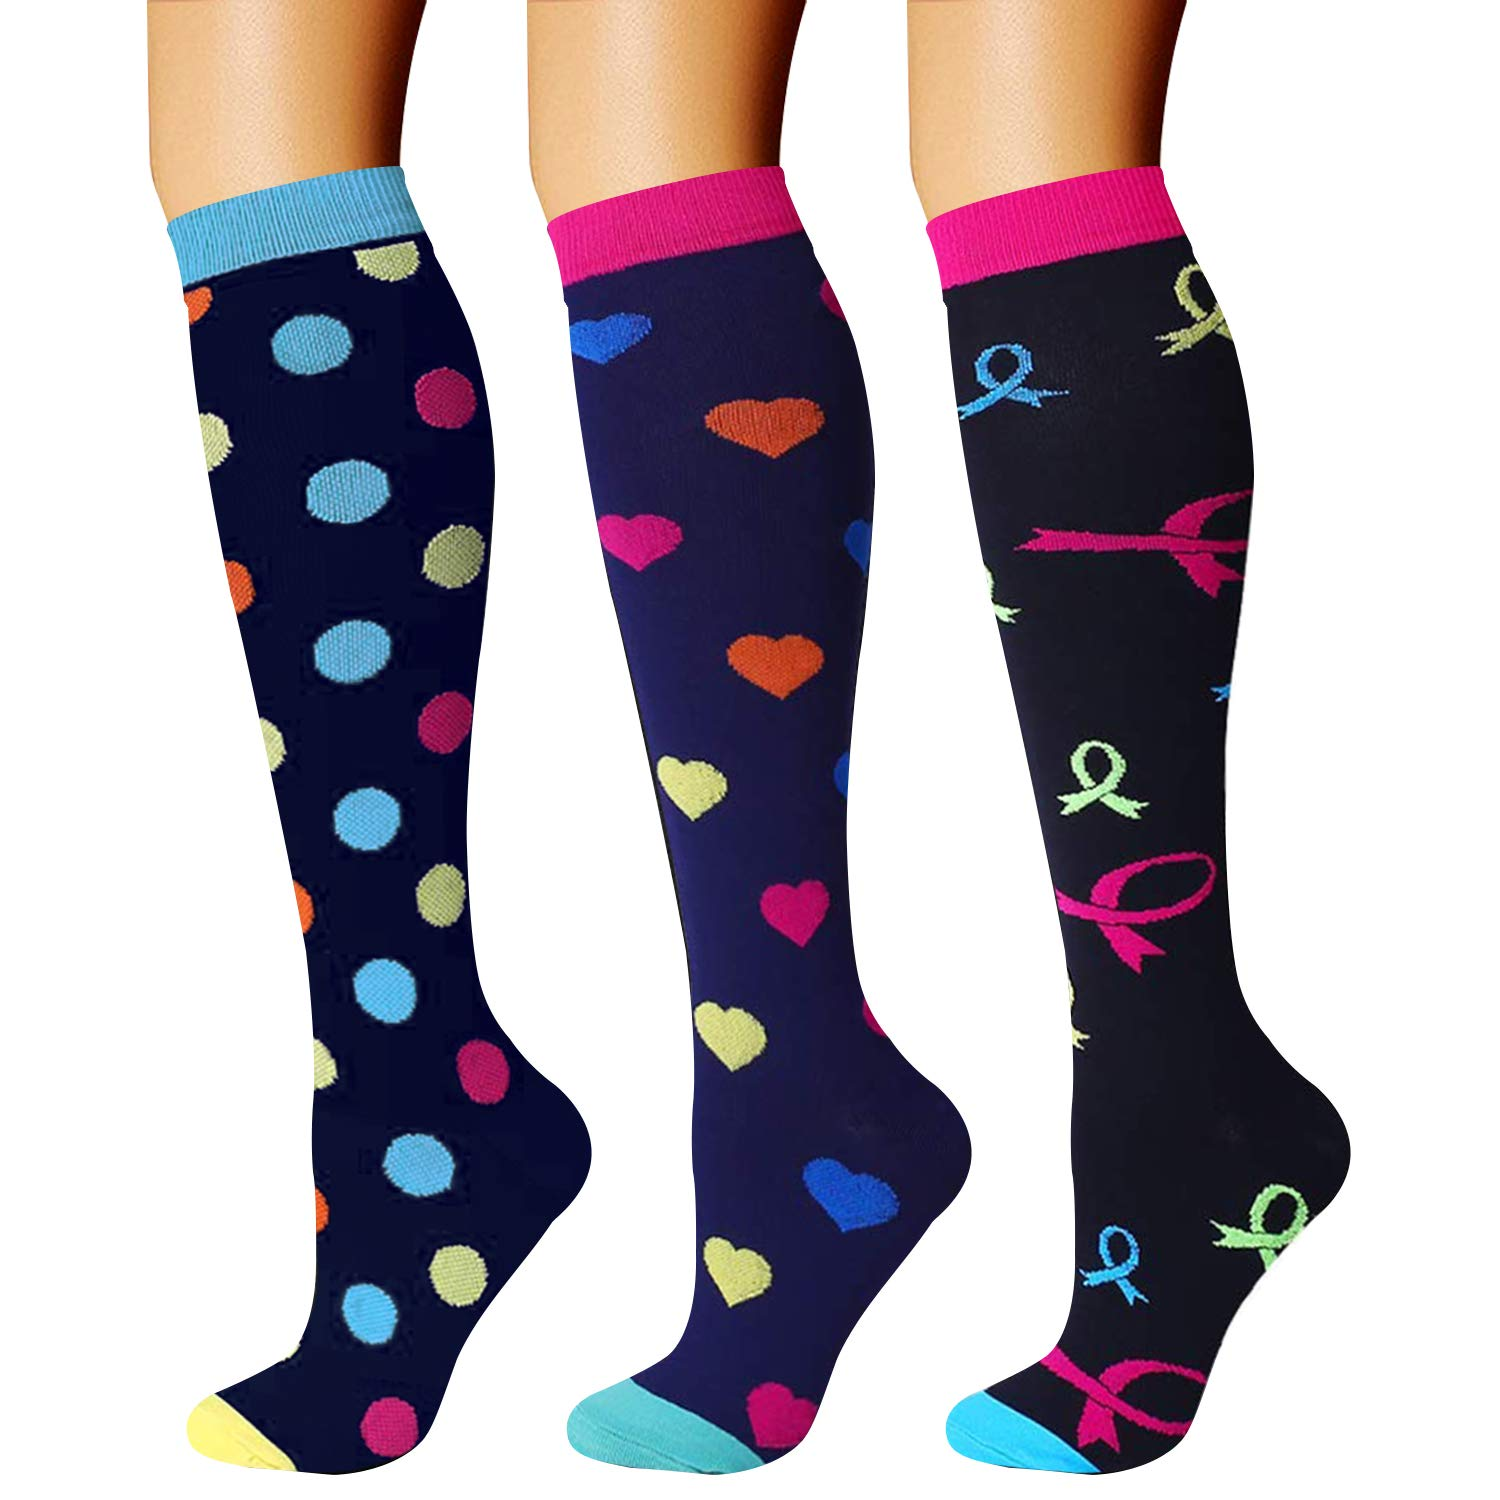 CHARMKING Compression Socks (3 Pairs) 15-20 mmHg is Best Athletic & Medical for Men & Women, Running, Flight, Travel, Nurses, Edema - Boost Performance, Blood Circulation & Recovery (S/M, Assorted 08) by CHARMKING